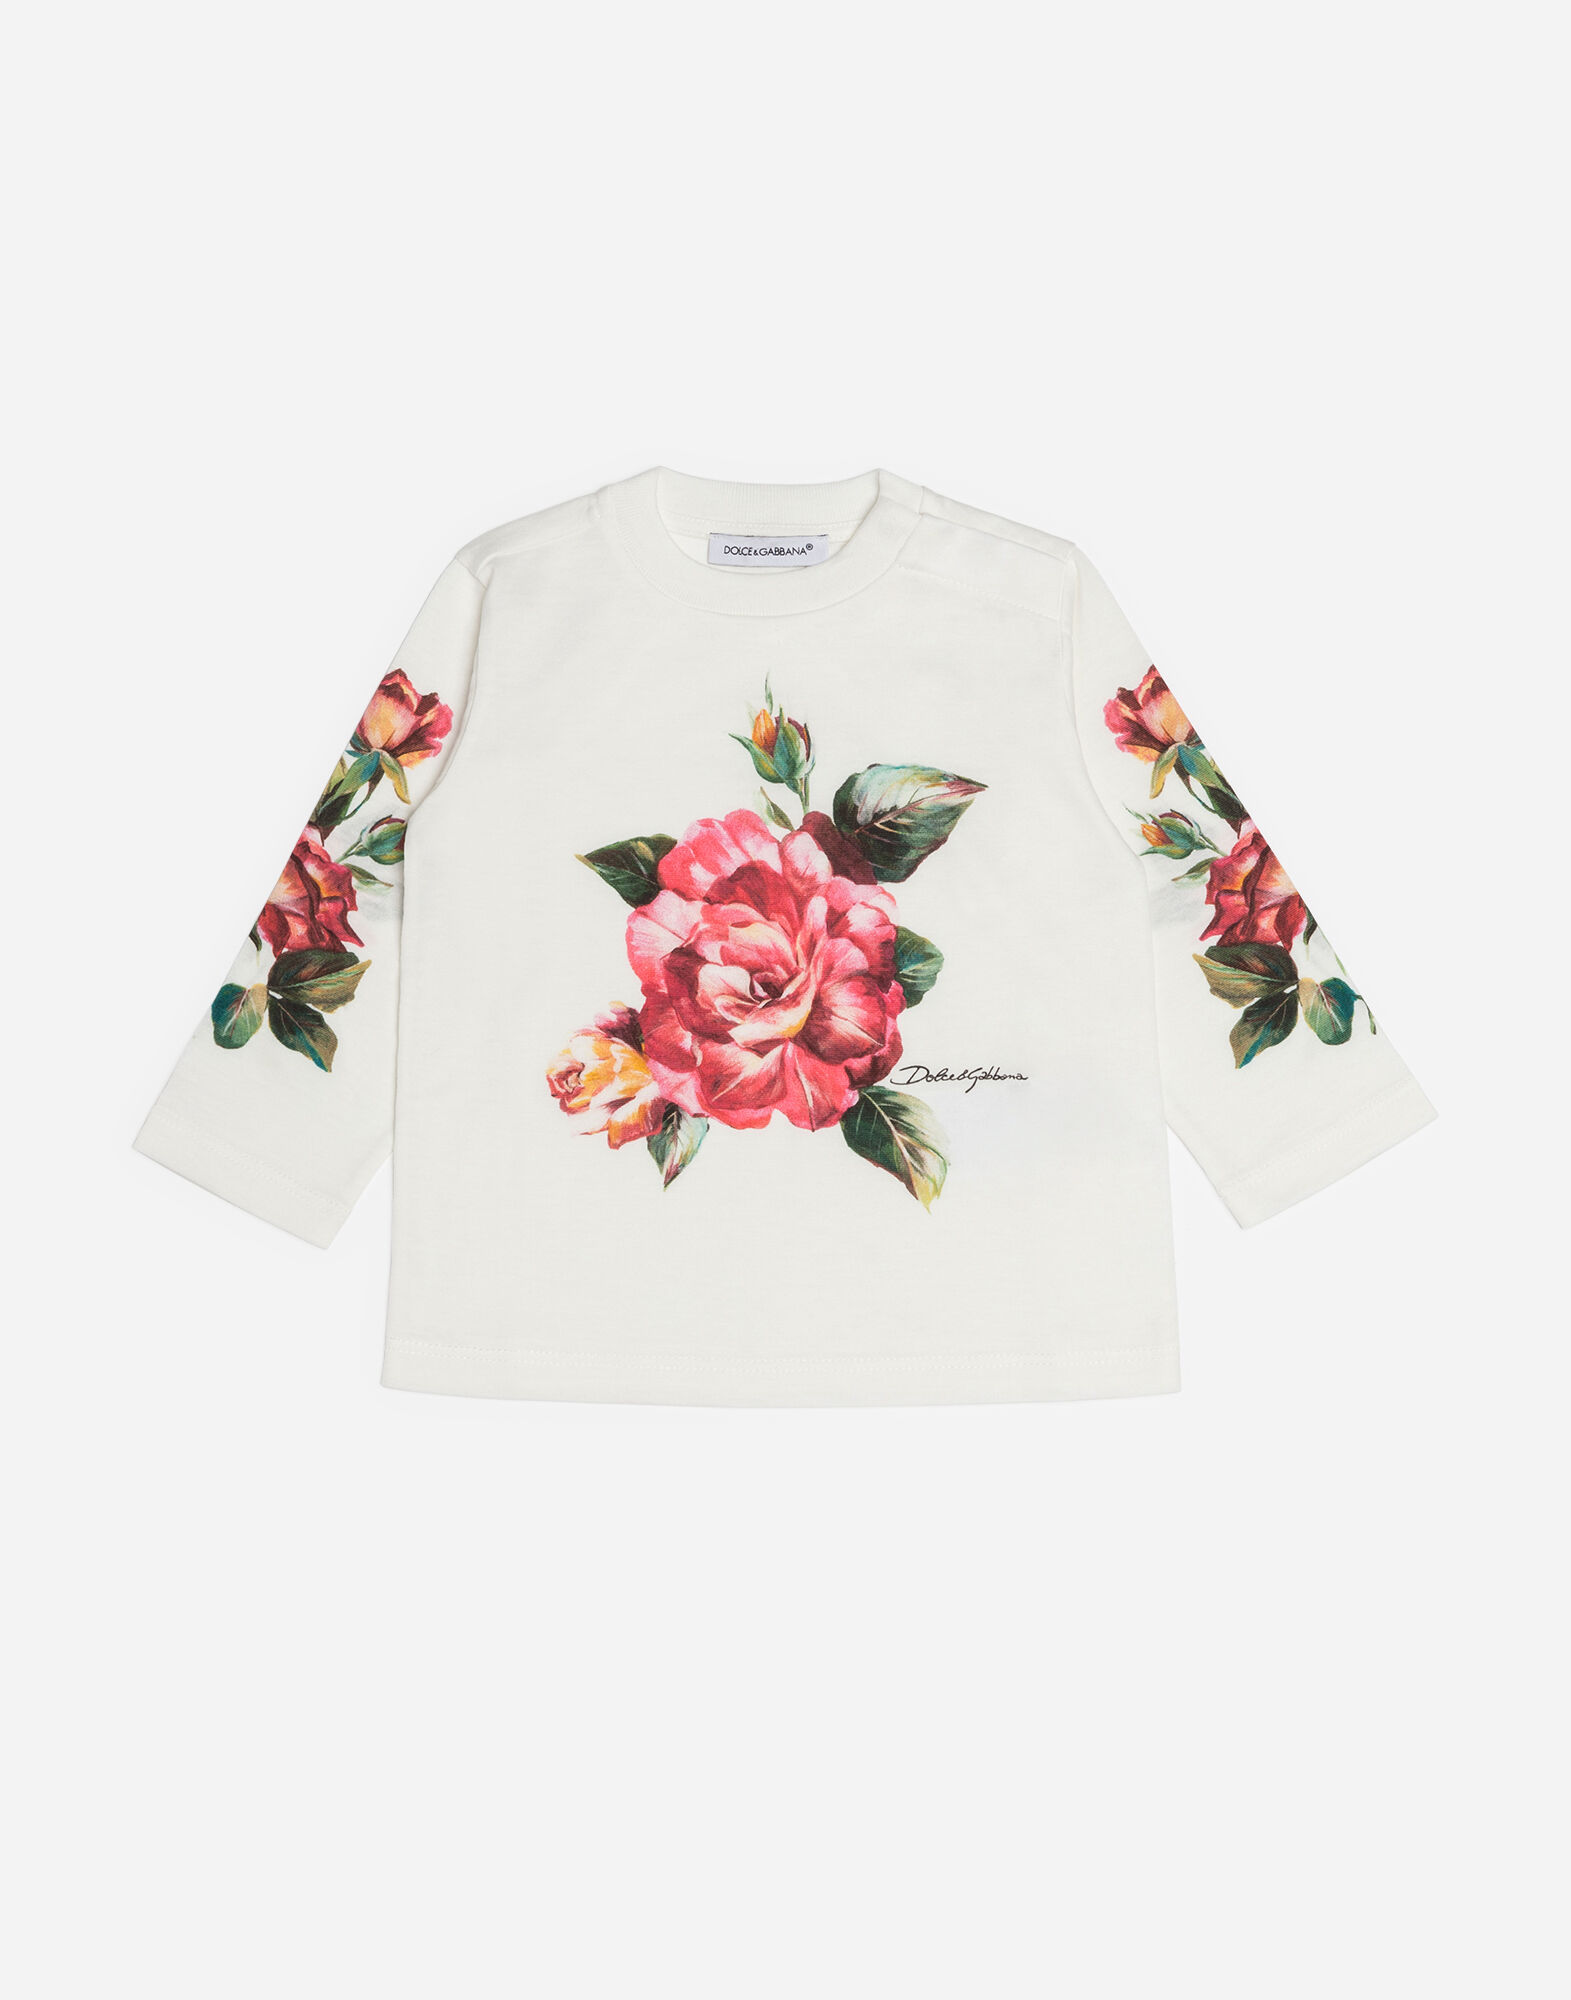 Dolce&Gabbana PRINTED COTTON T-SHIRT